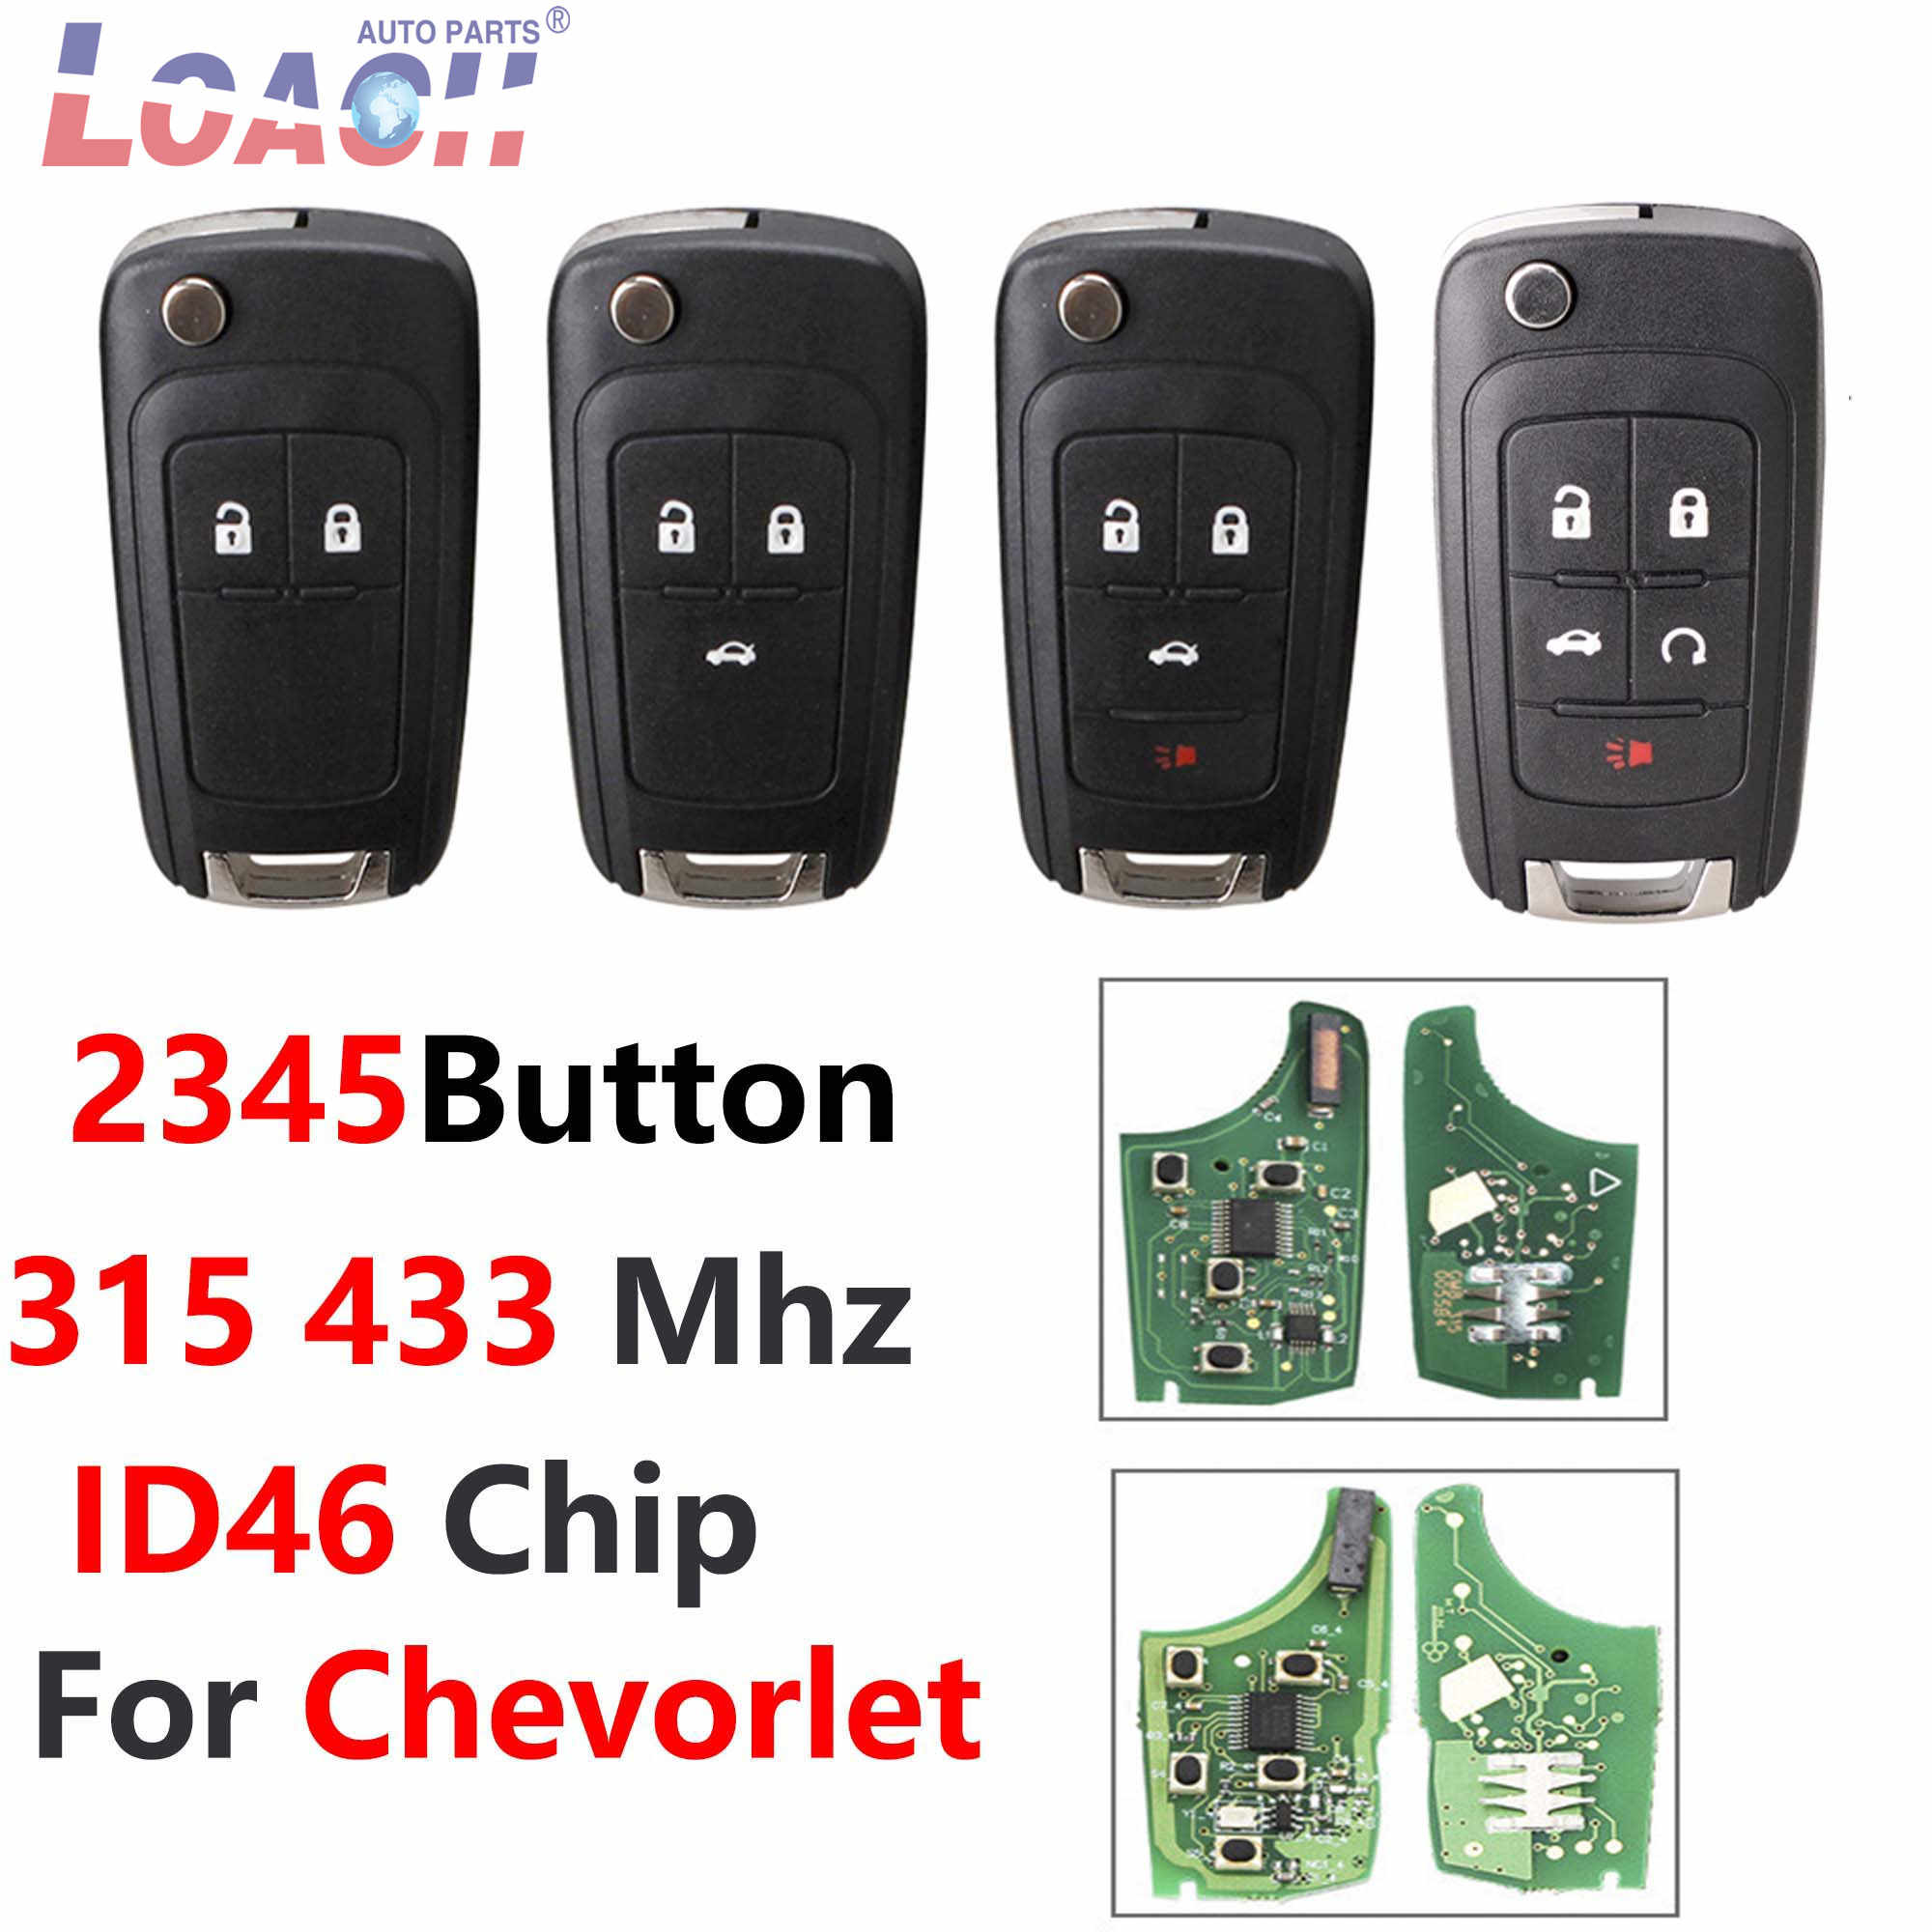 New Key fob with flip Key 5 Buttons car Remote Starter for Chevy Camaro Equinox Cruze Impala Malibu with Battery and Electronics FCC OHT01060512 KEYFOB CANADA